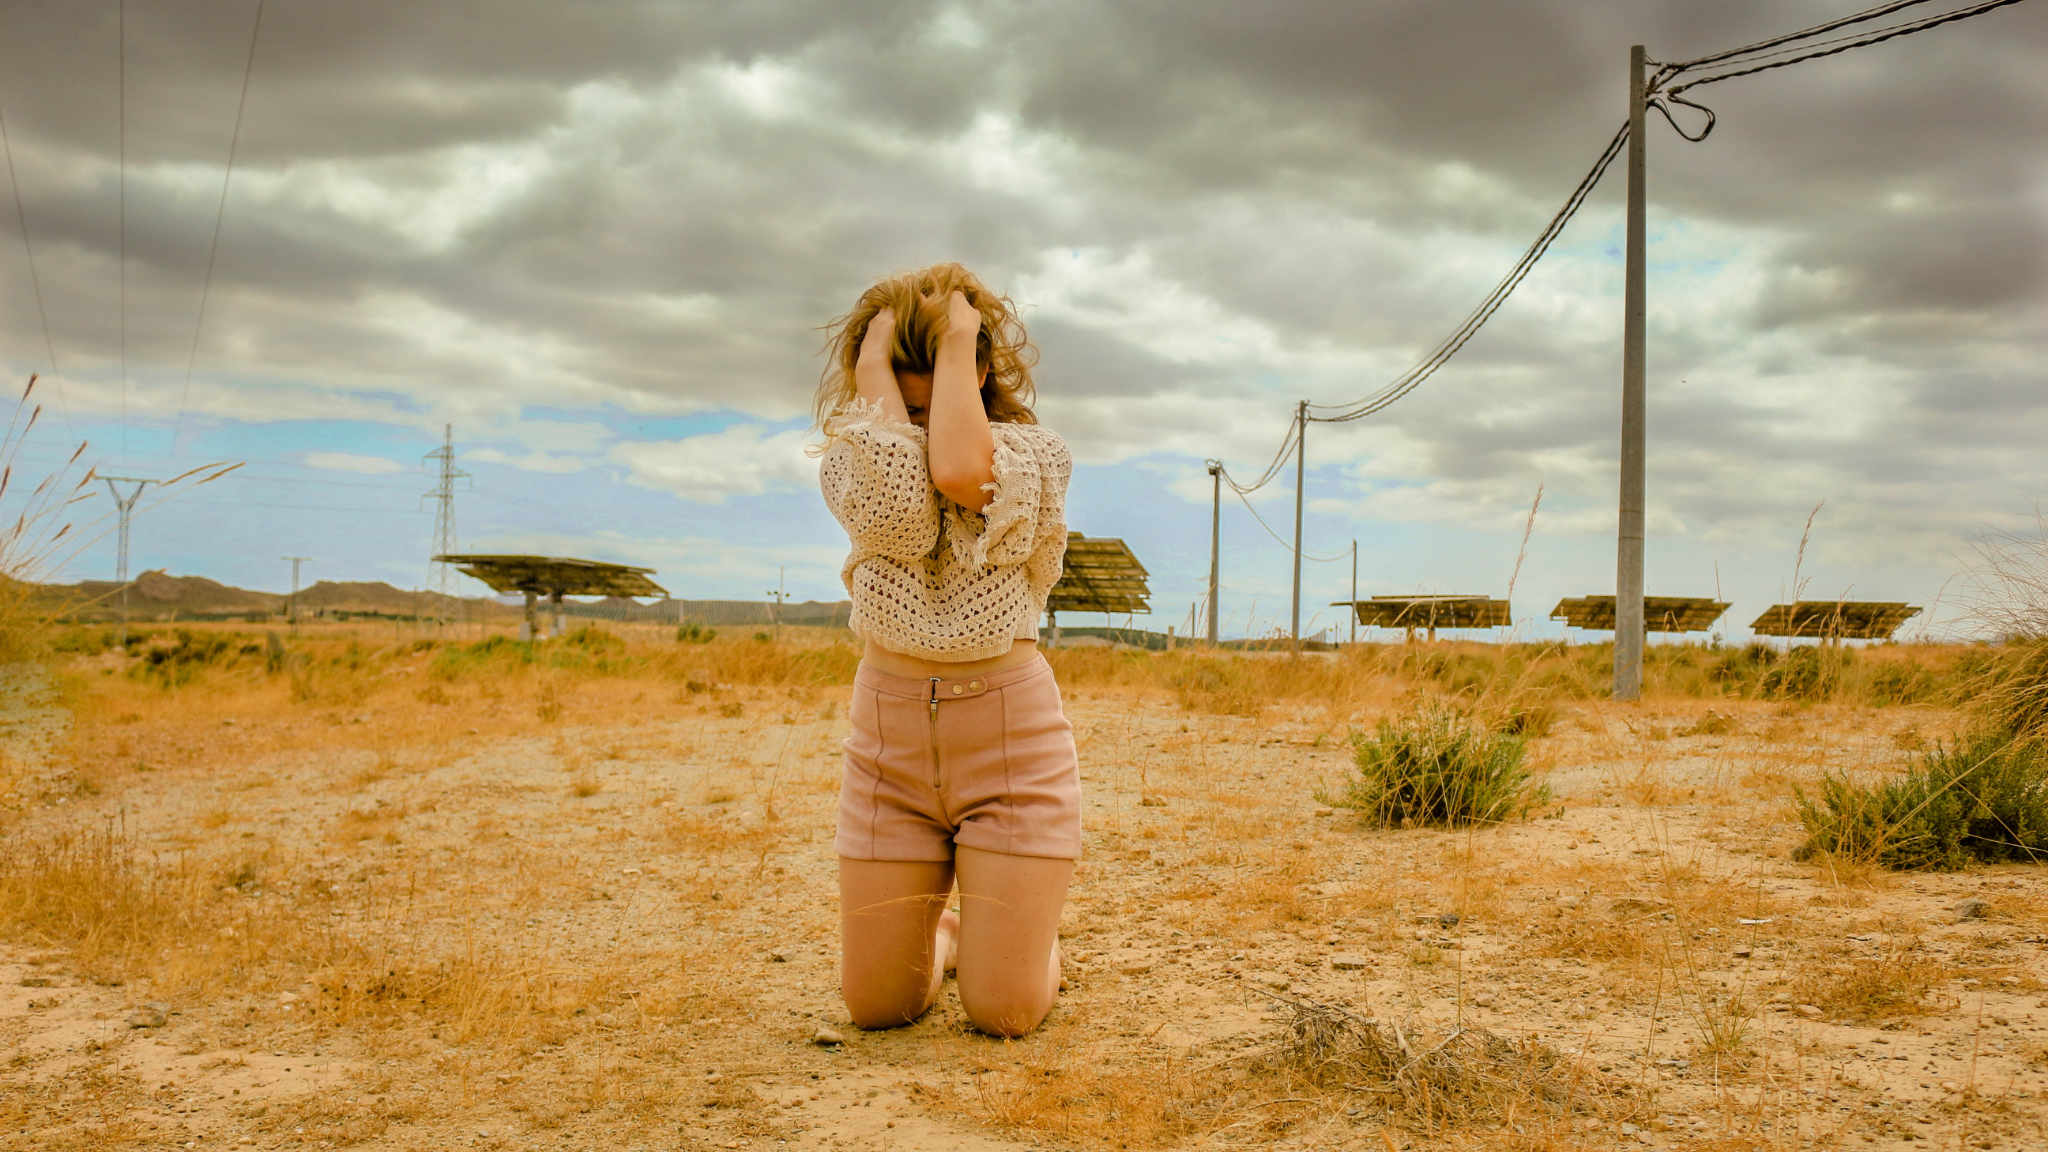 The desperate Maria is sitting in the middle of a spanish desert. @ Les Gastons Film, 2021